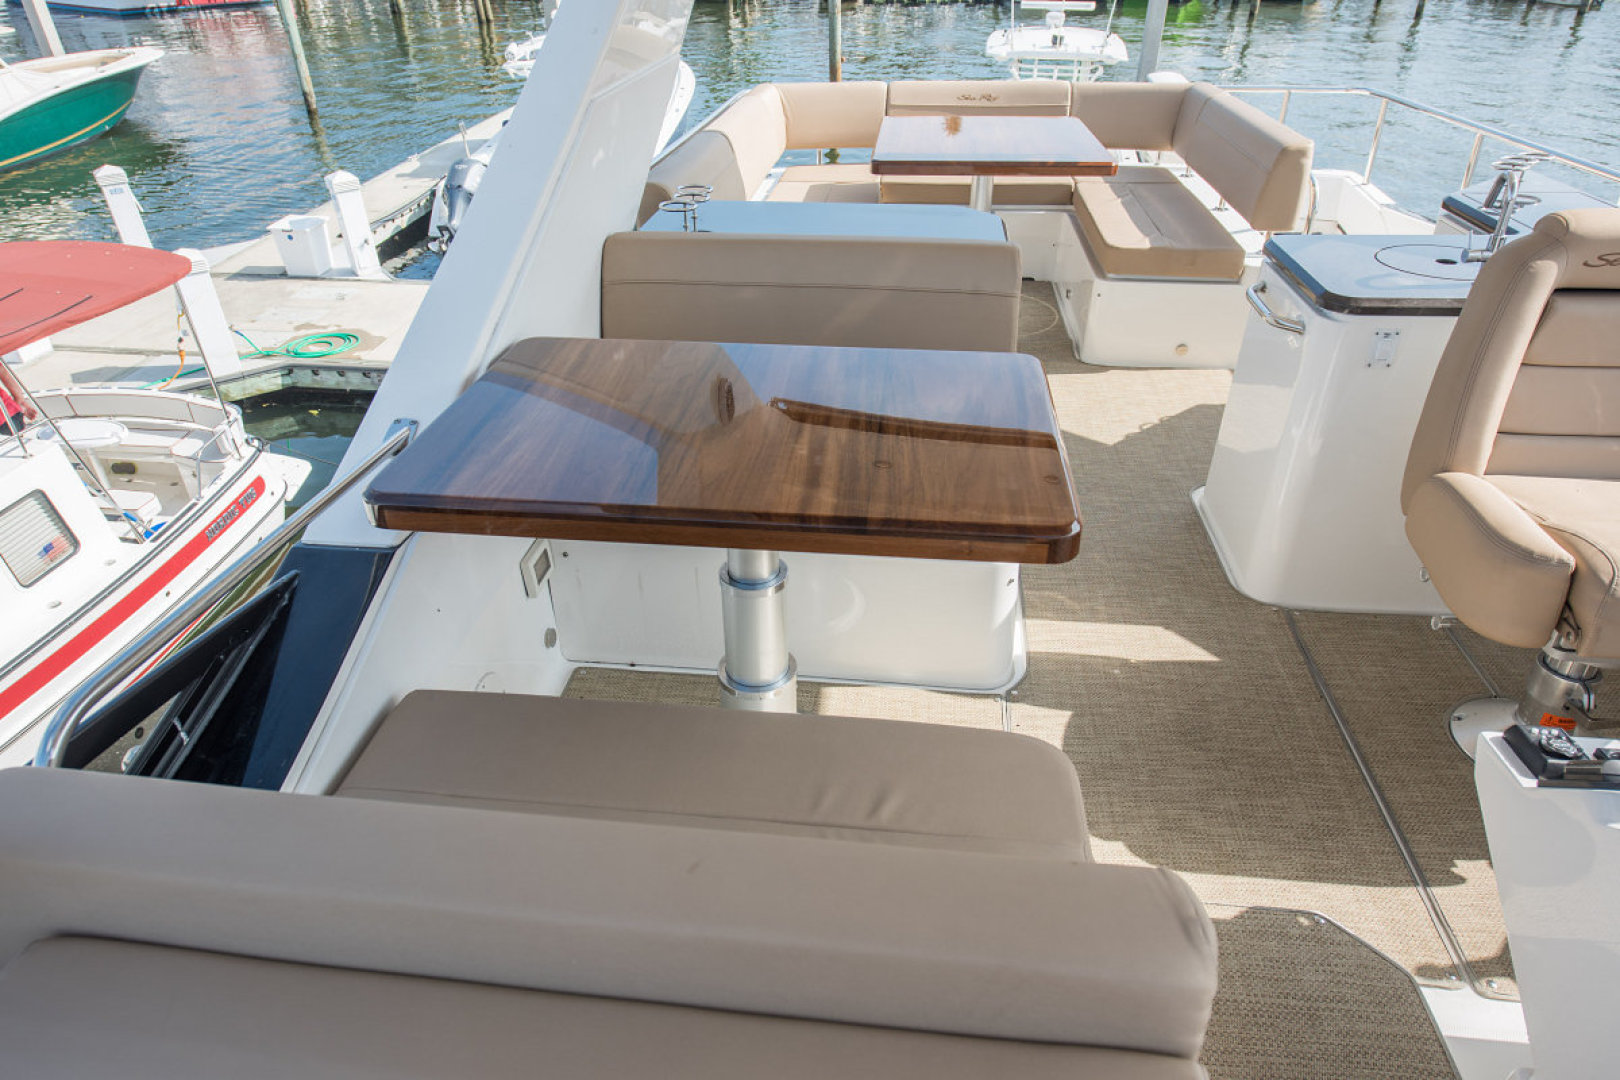 Sea Ray-L590 Fly 2016-2016 Sea Ray L590 Fly Ft. Lauderdale-Florida-United States-1284611 | Thumbnail